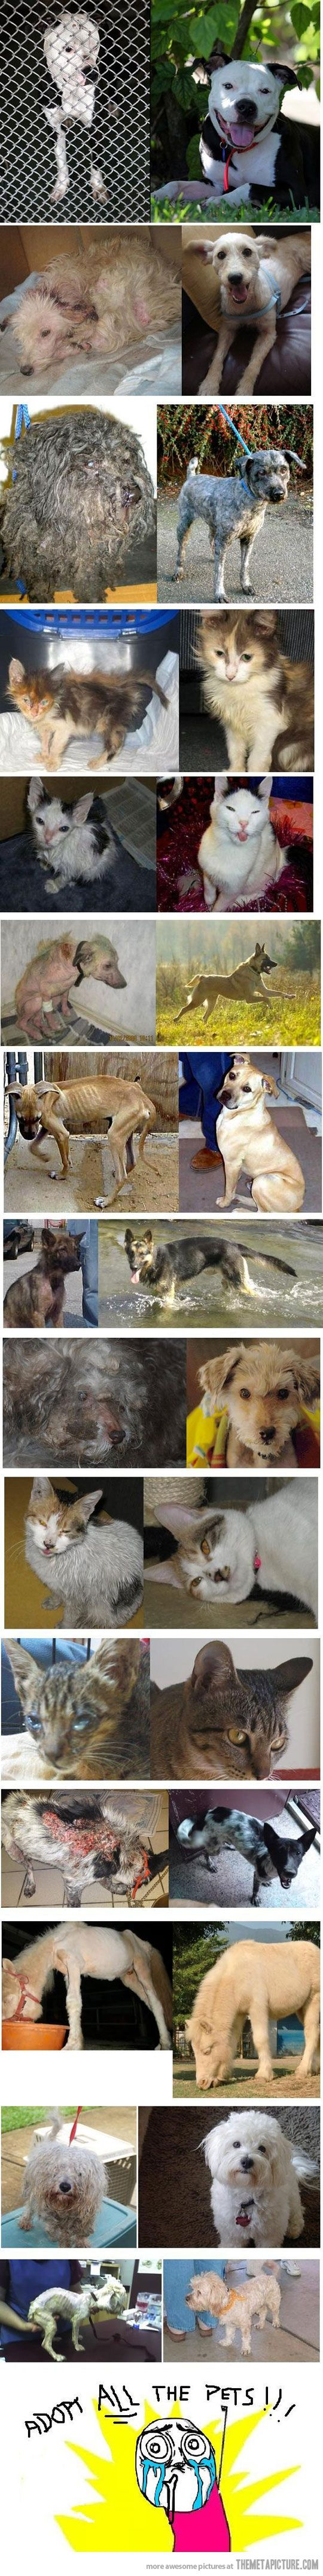 Yes! adopt them all! Wow so exited to share these SUCCESS PHOTOS!!PLEASE HELP SAVE OTHER ANIMALS !!THEY NEED OUR HELP!!